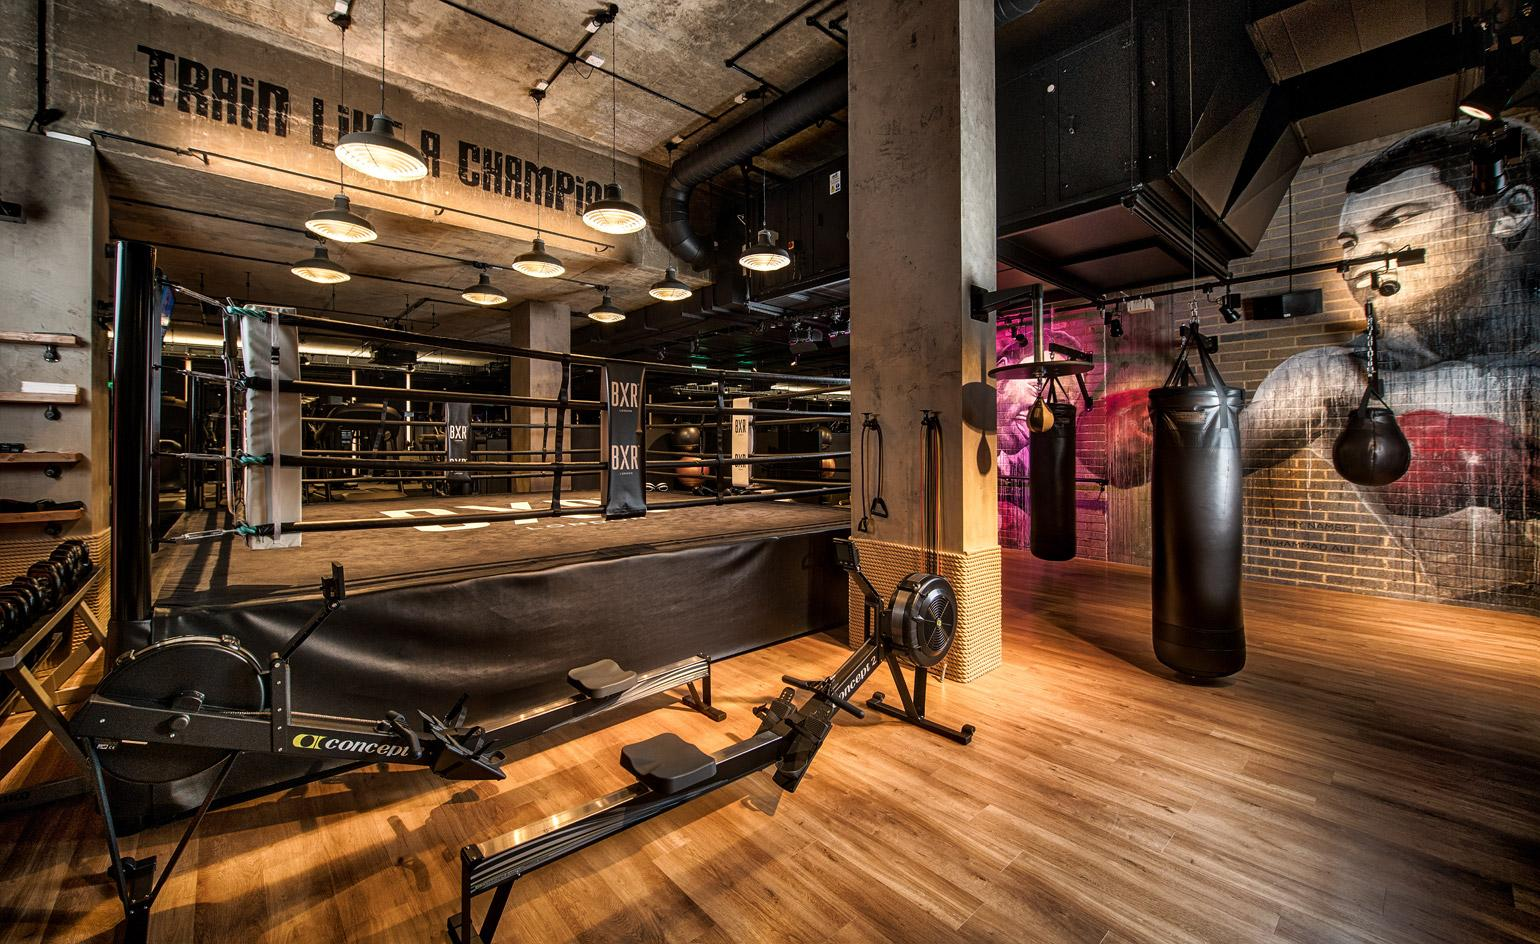 Bergman interiors packs a punch at boutique boxing gym wallpaper*